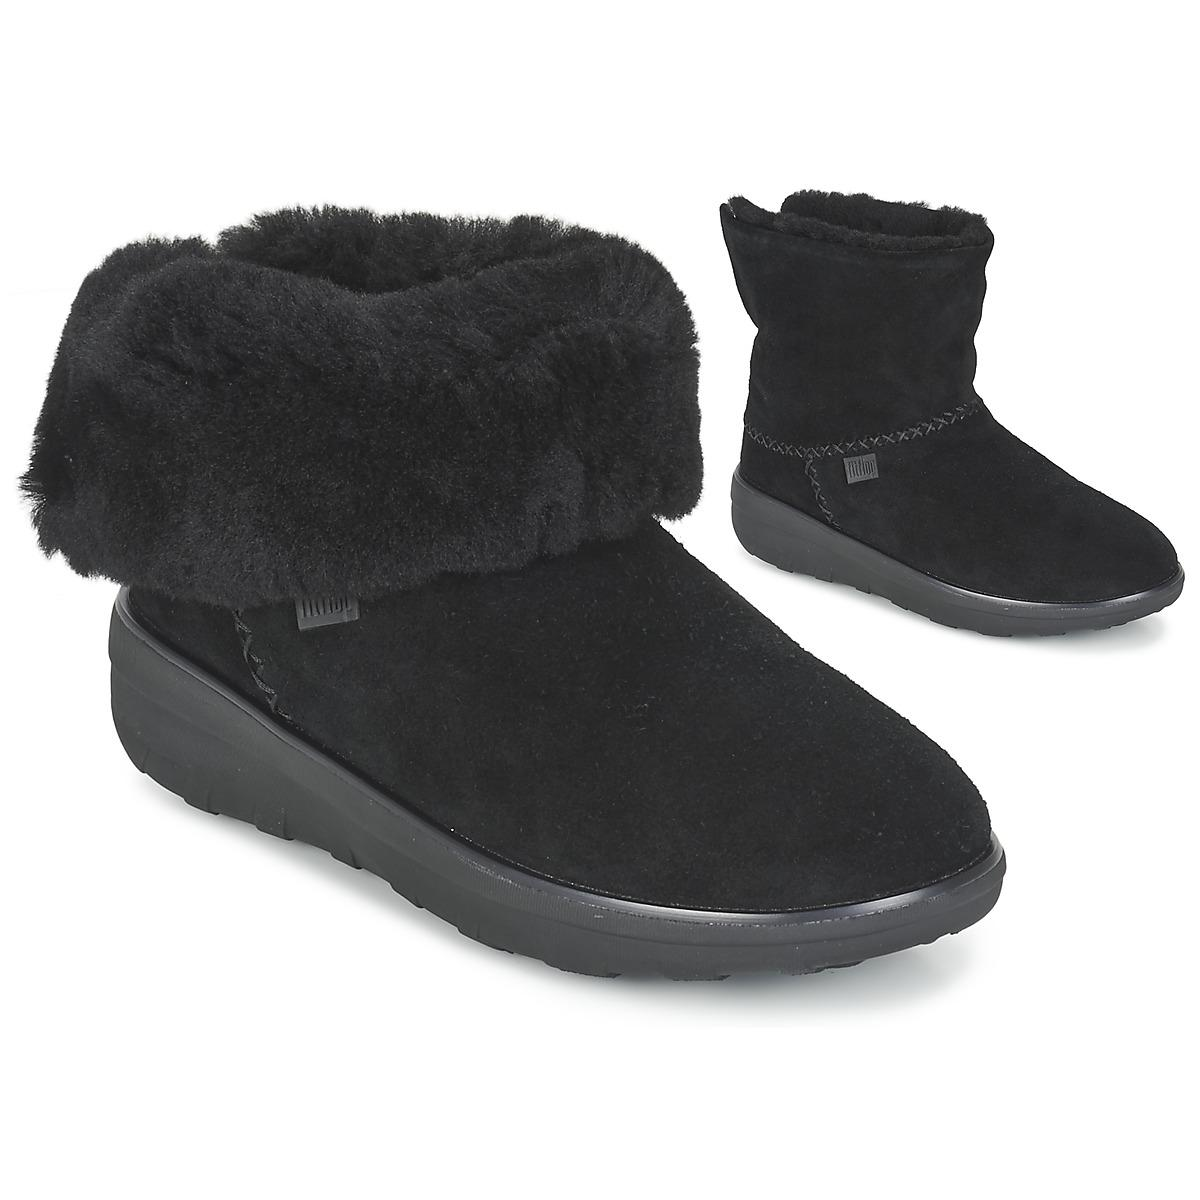 4249bb7cebb54f Fitflop Mukluk Shorty 2 Boots Women s Mid Boots In Black in Black - Lyst